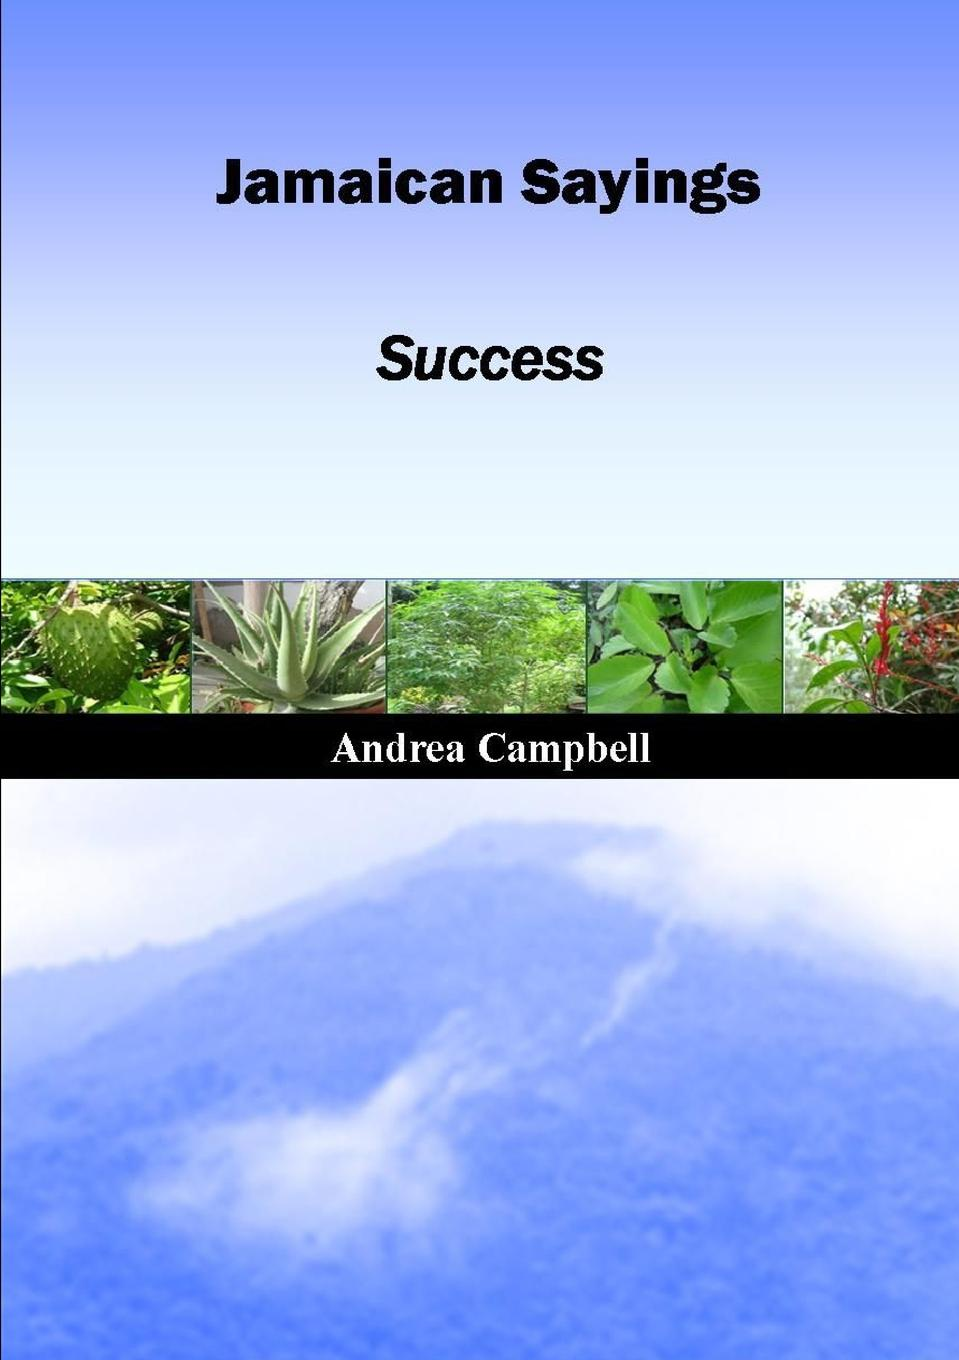 Andrea Campbell Jamaican Sayings - Success